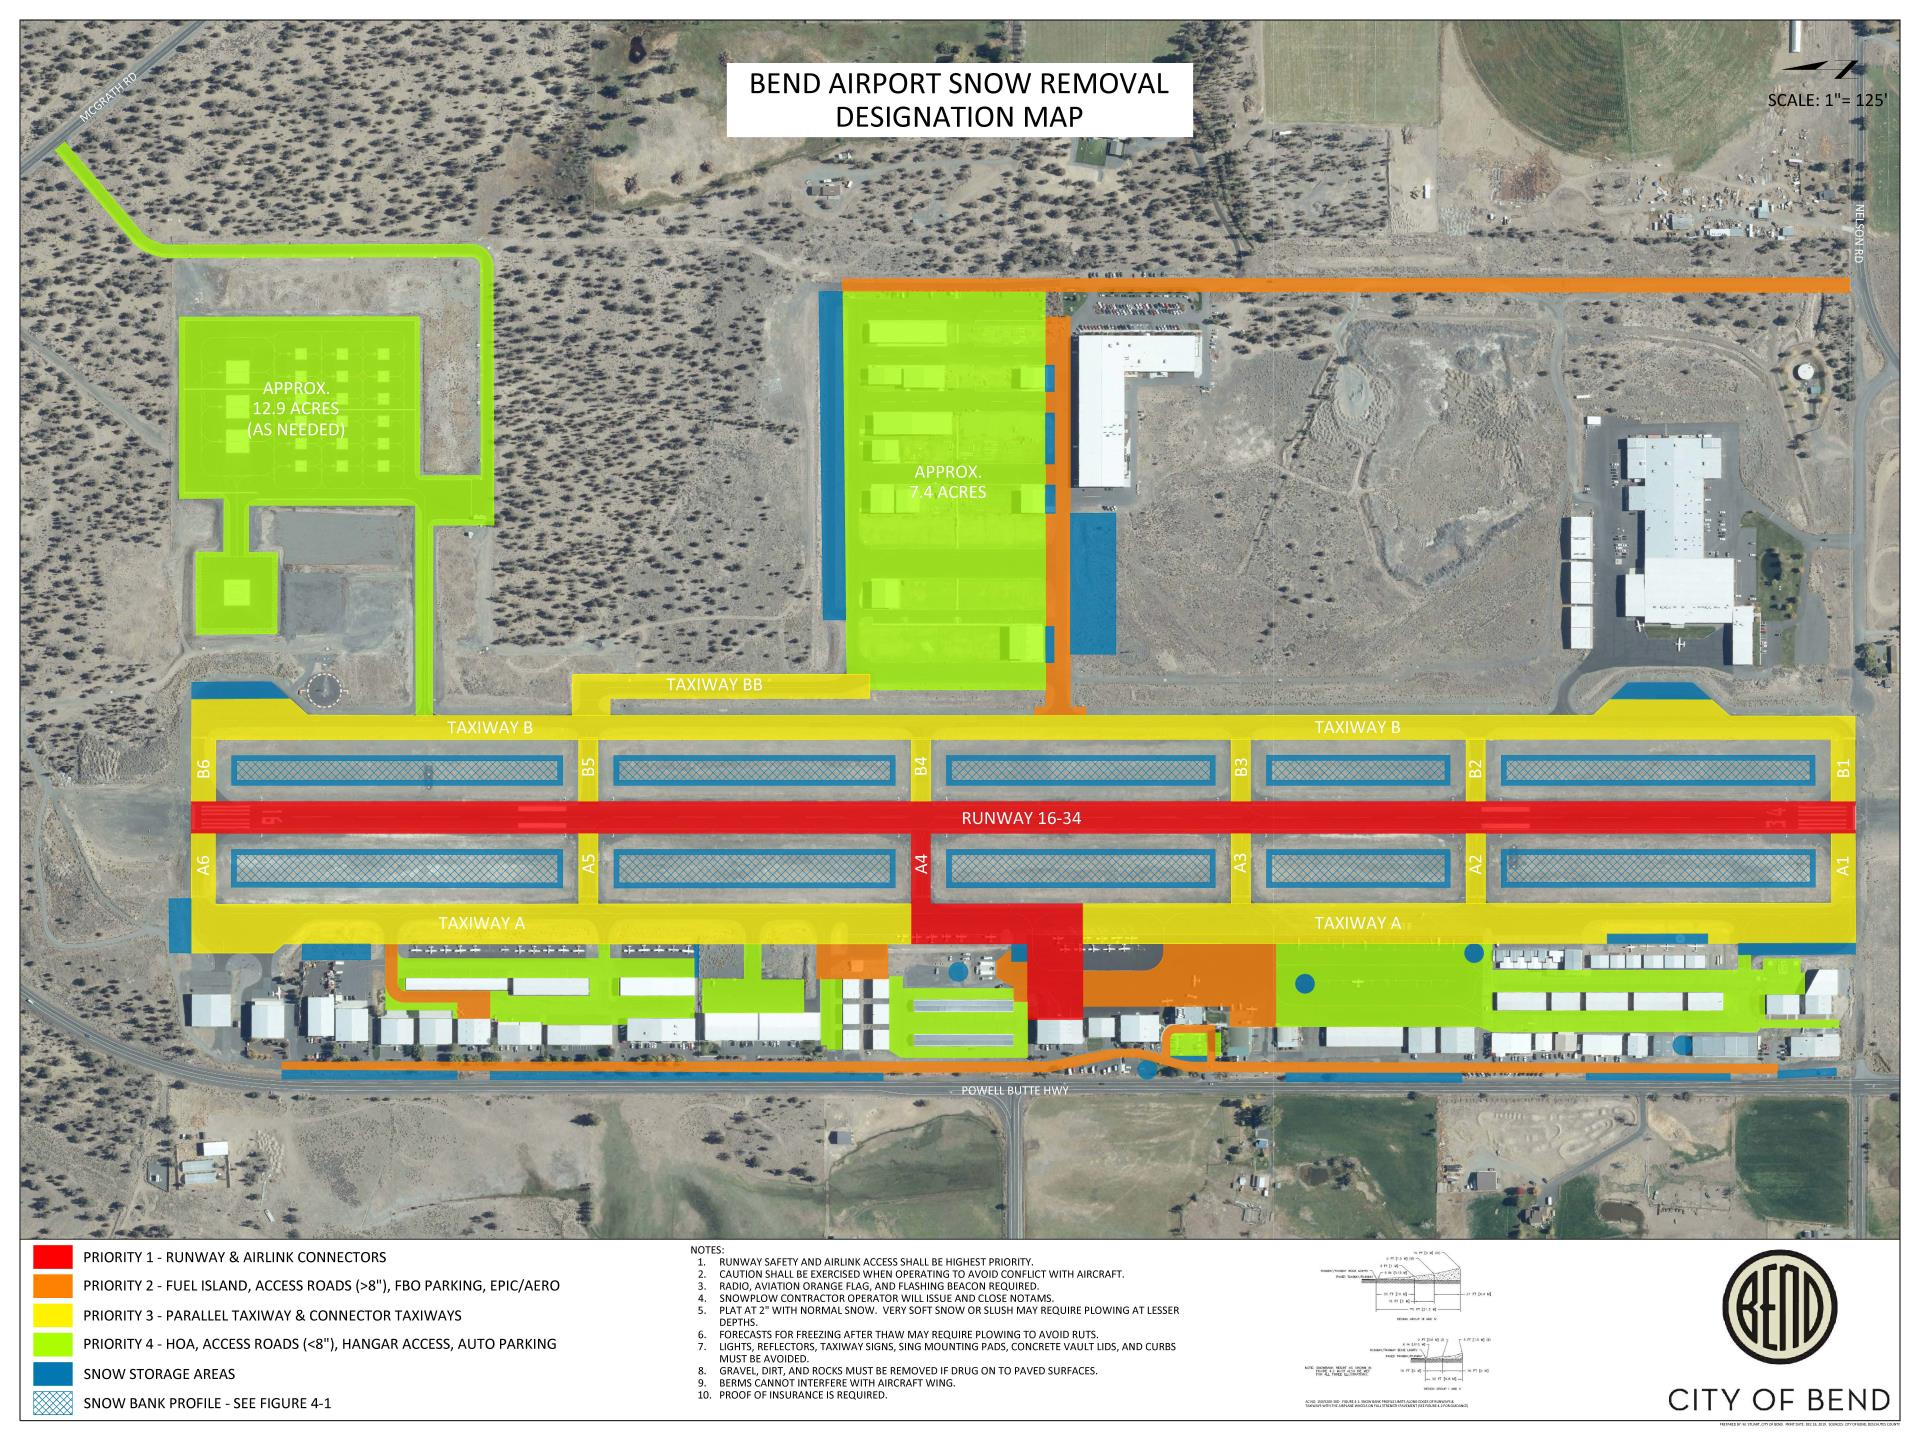 Bend Airport Snow Removal Designation Map